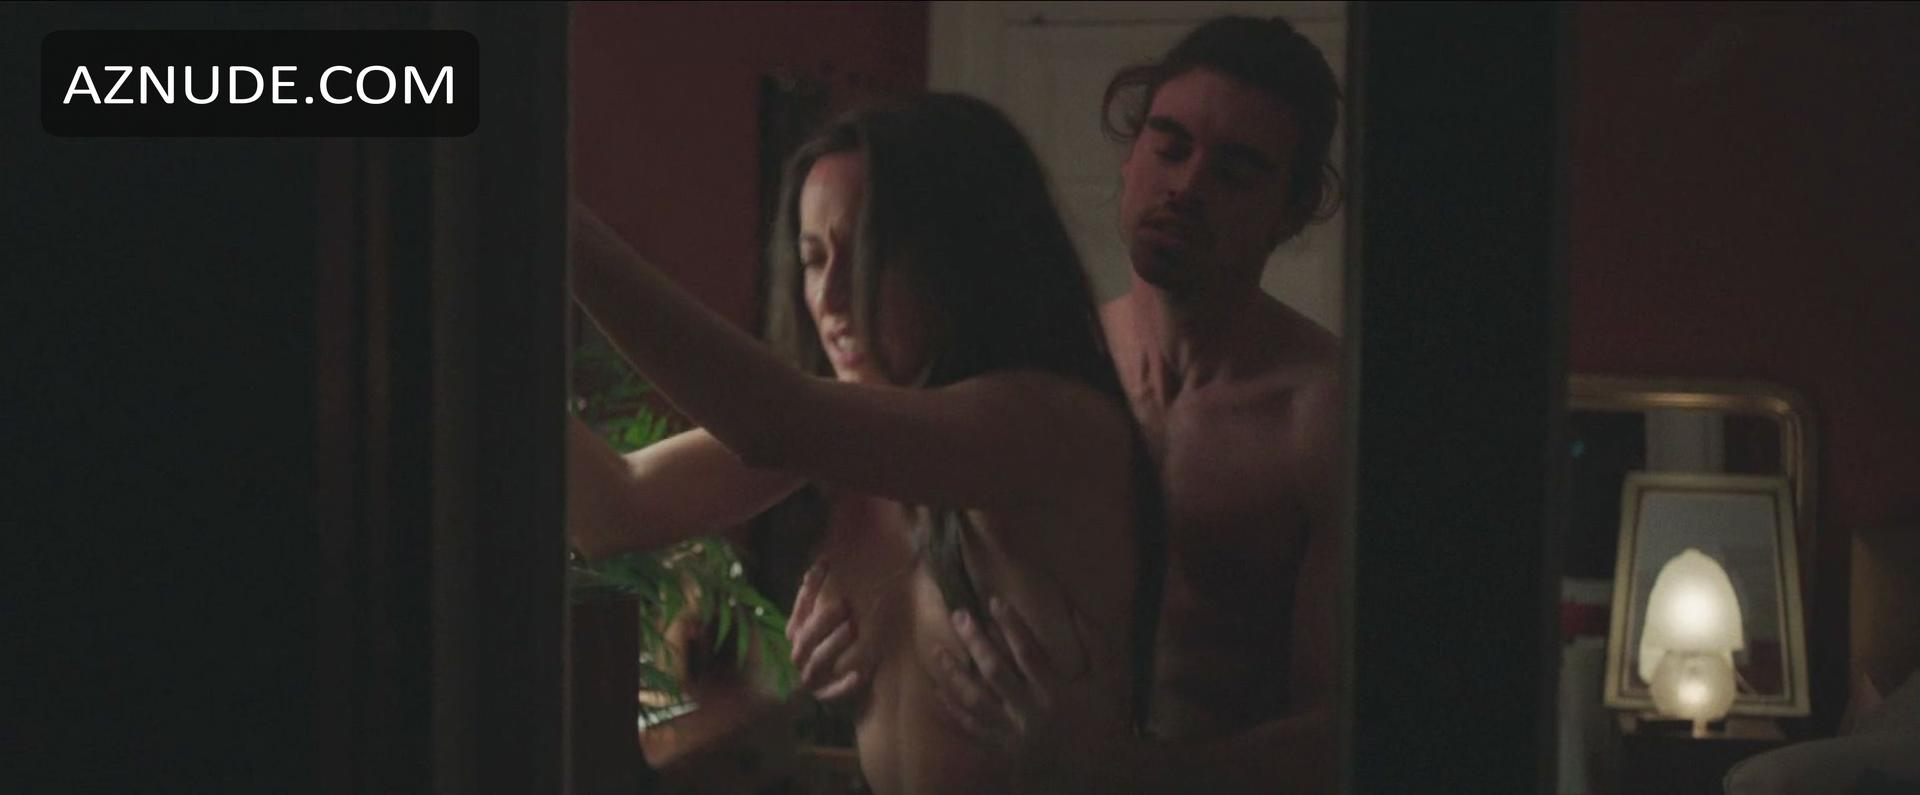 Oona chaplin immaculate conception hd nude - 2 part 1